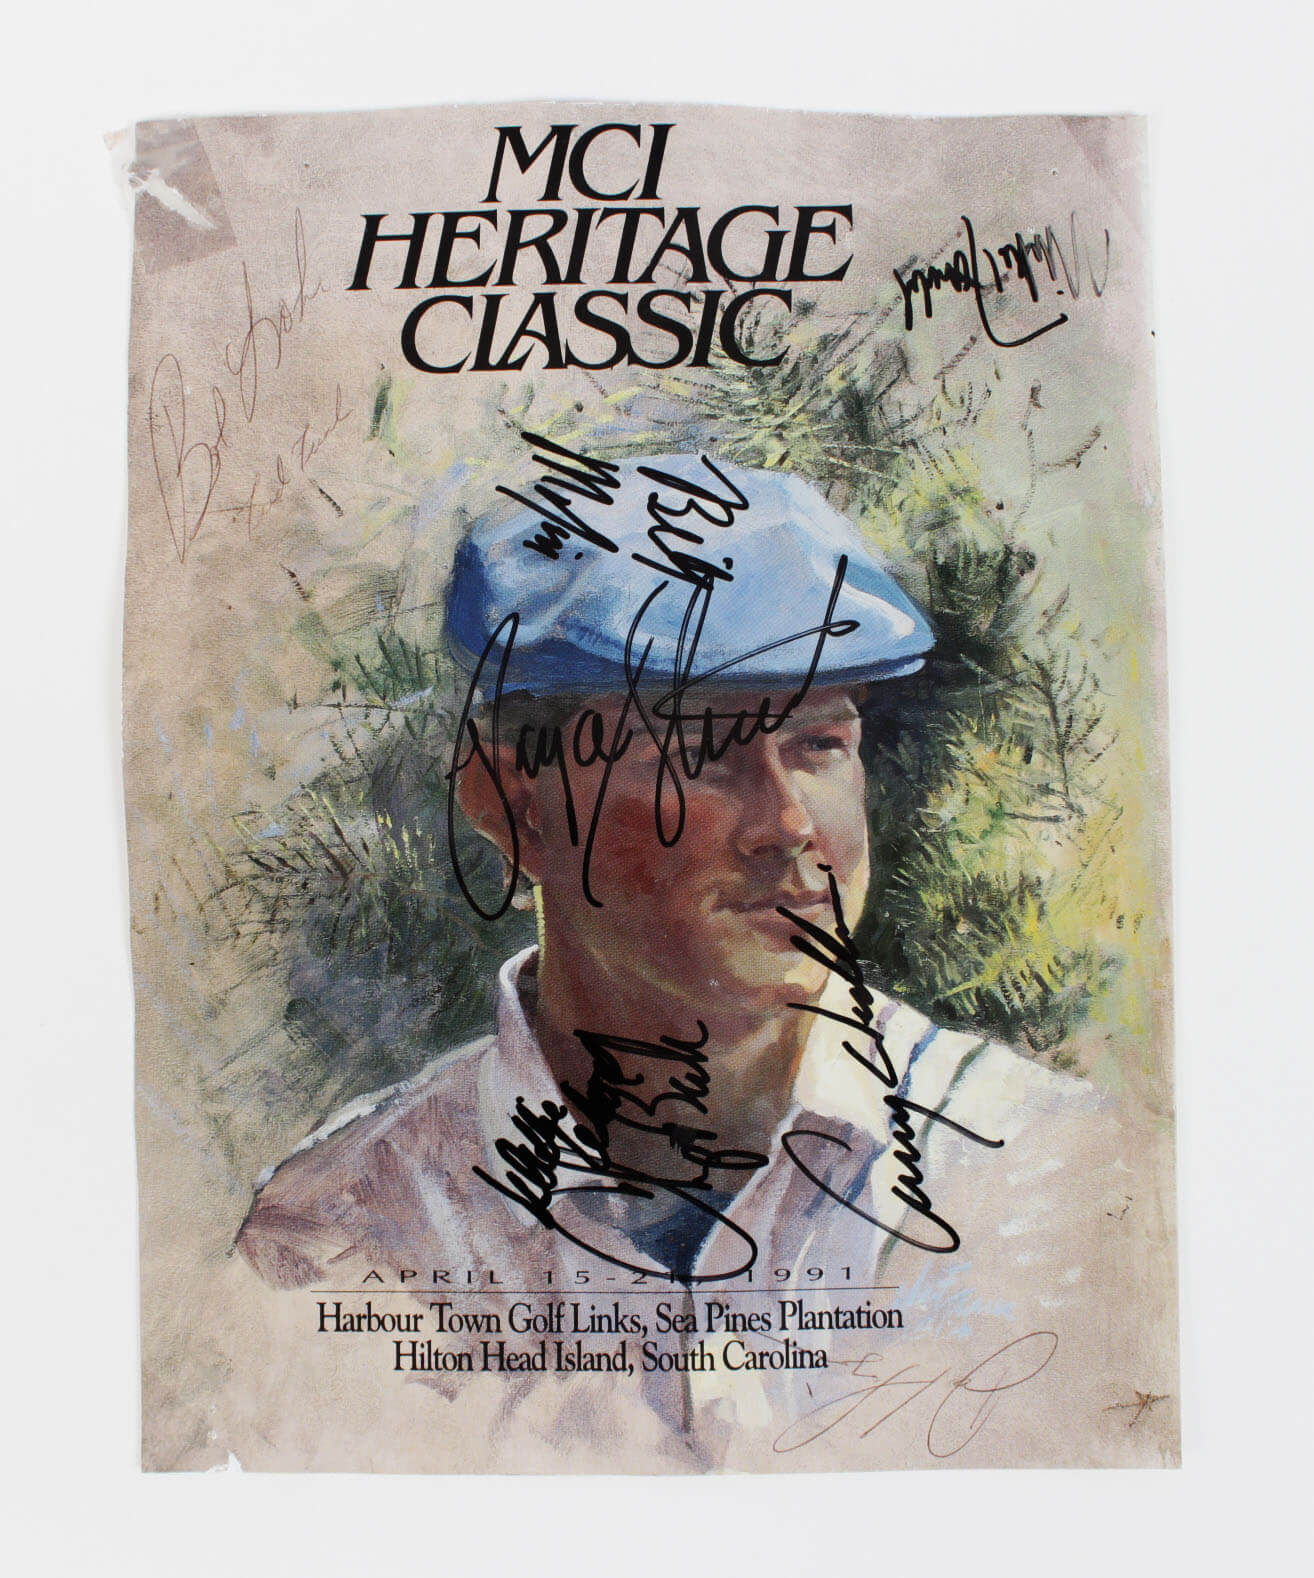 PGA Golf Legend - Payne Stewart Signed MCI Heritage Classic Program Cover +7 Sigs. Fred Funk, Chip Beck etc.